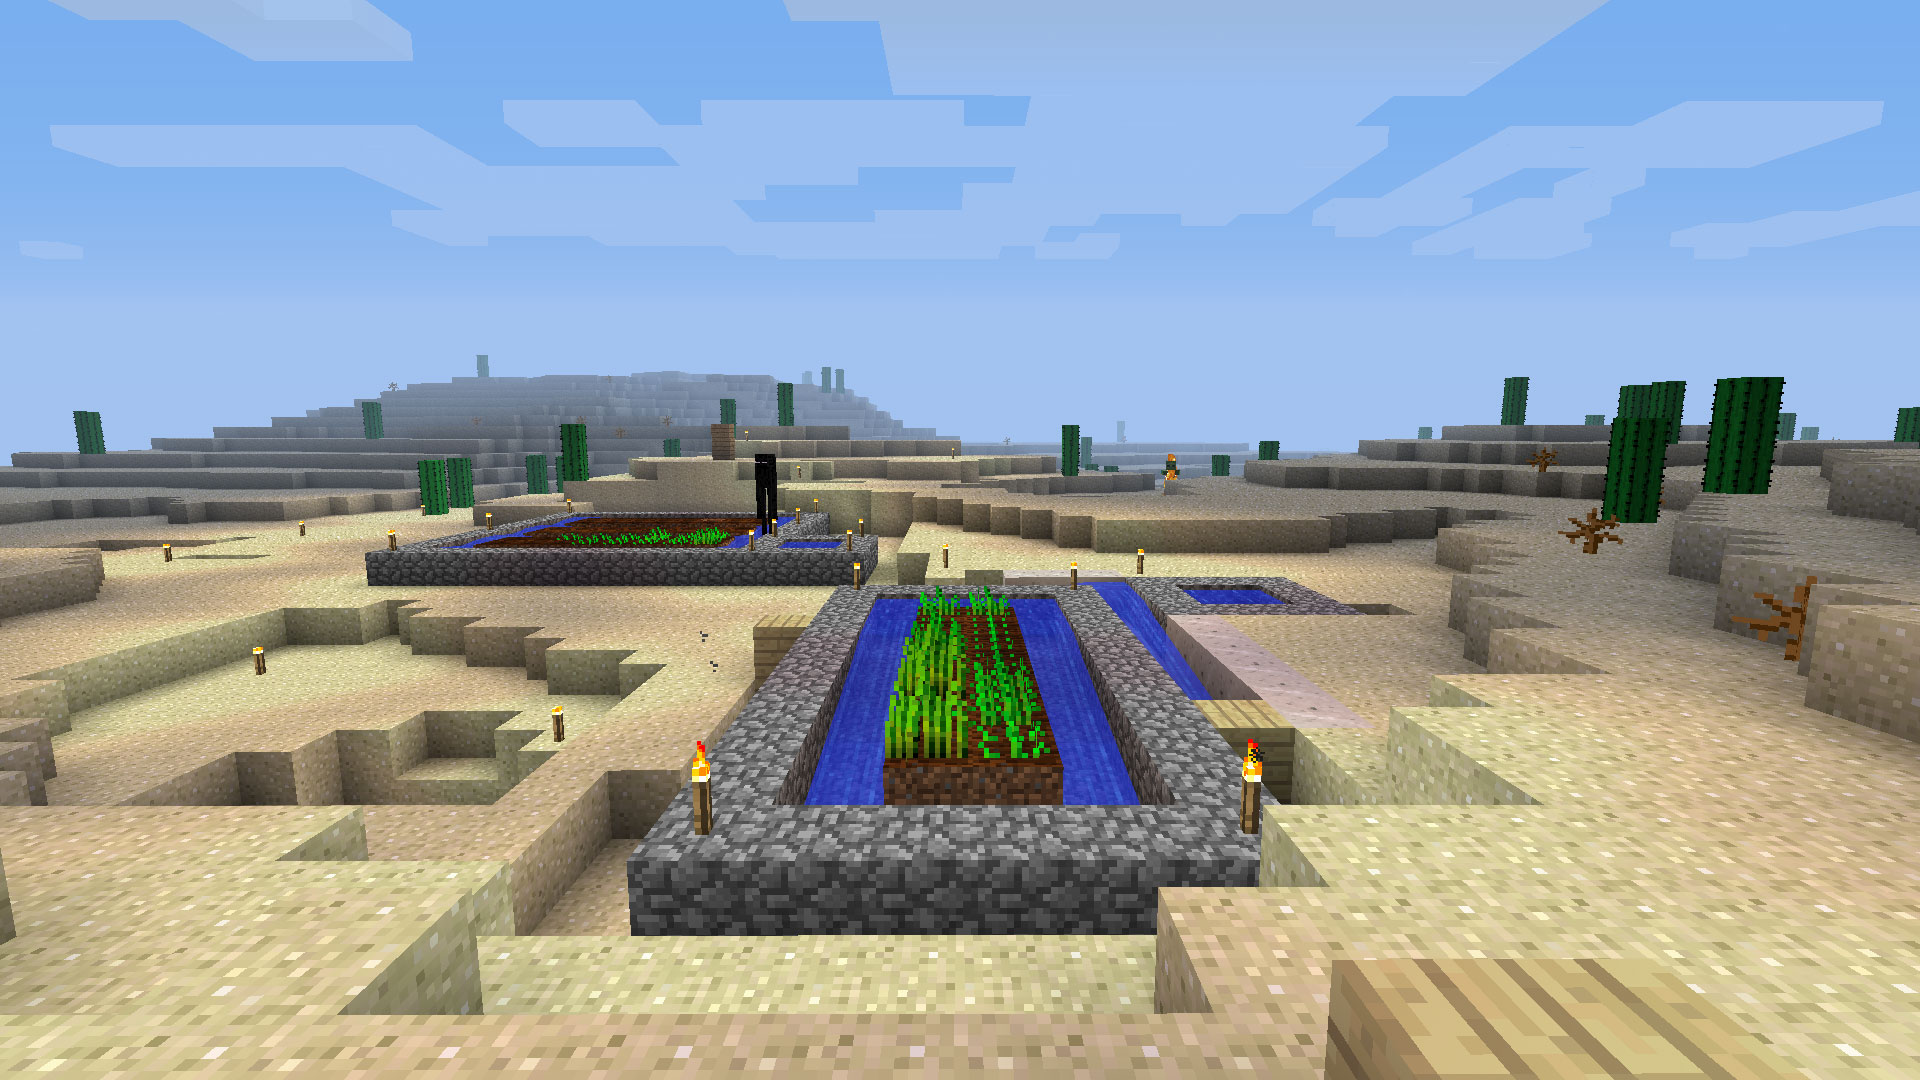 Some enterprising folks set up this ingenious farm on the other side of the base. Now no one will have to starve!